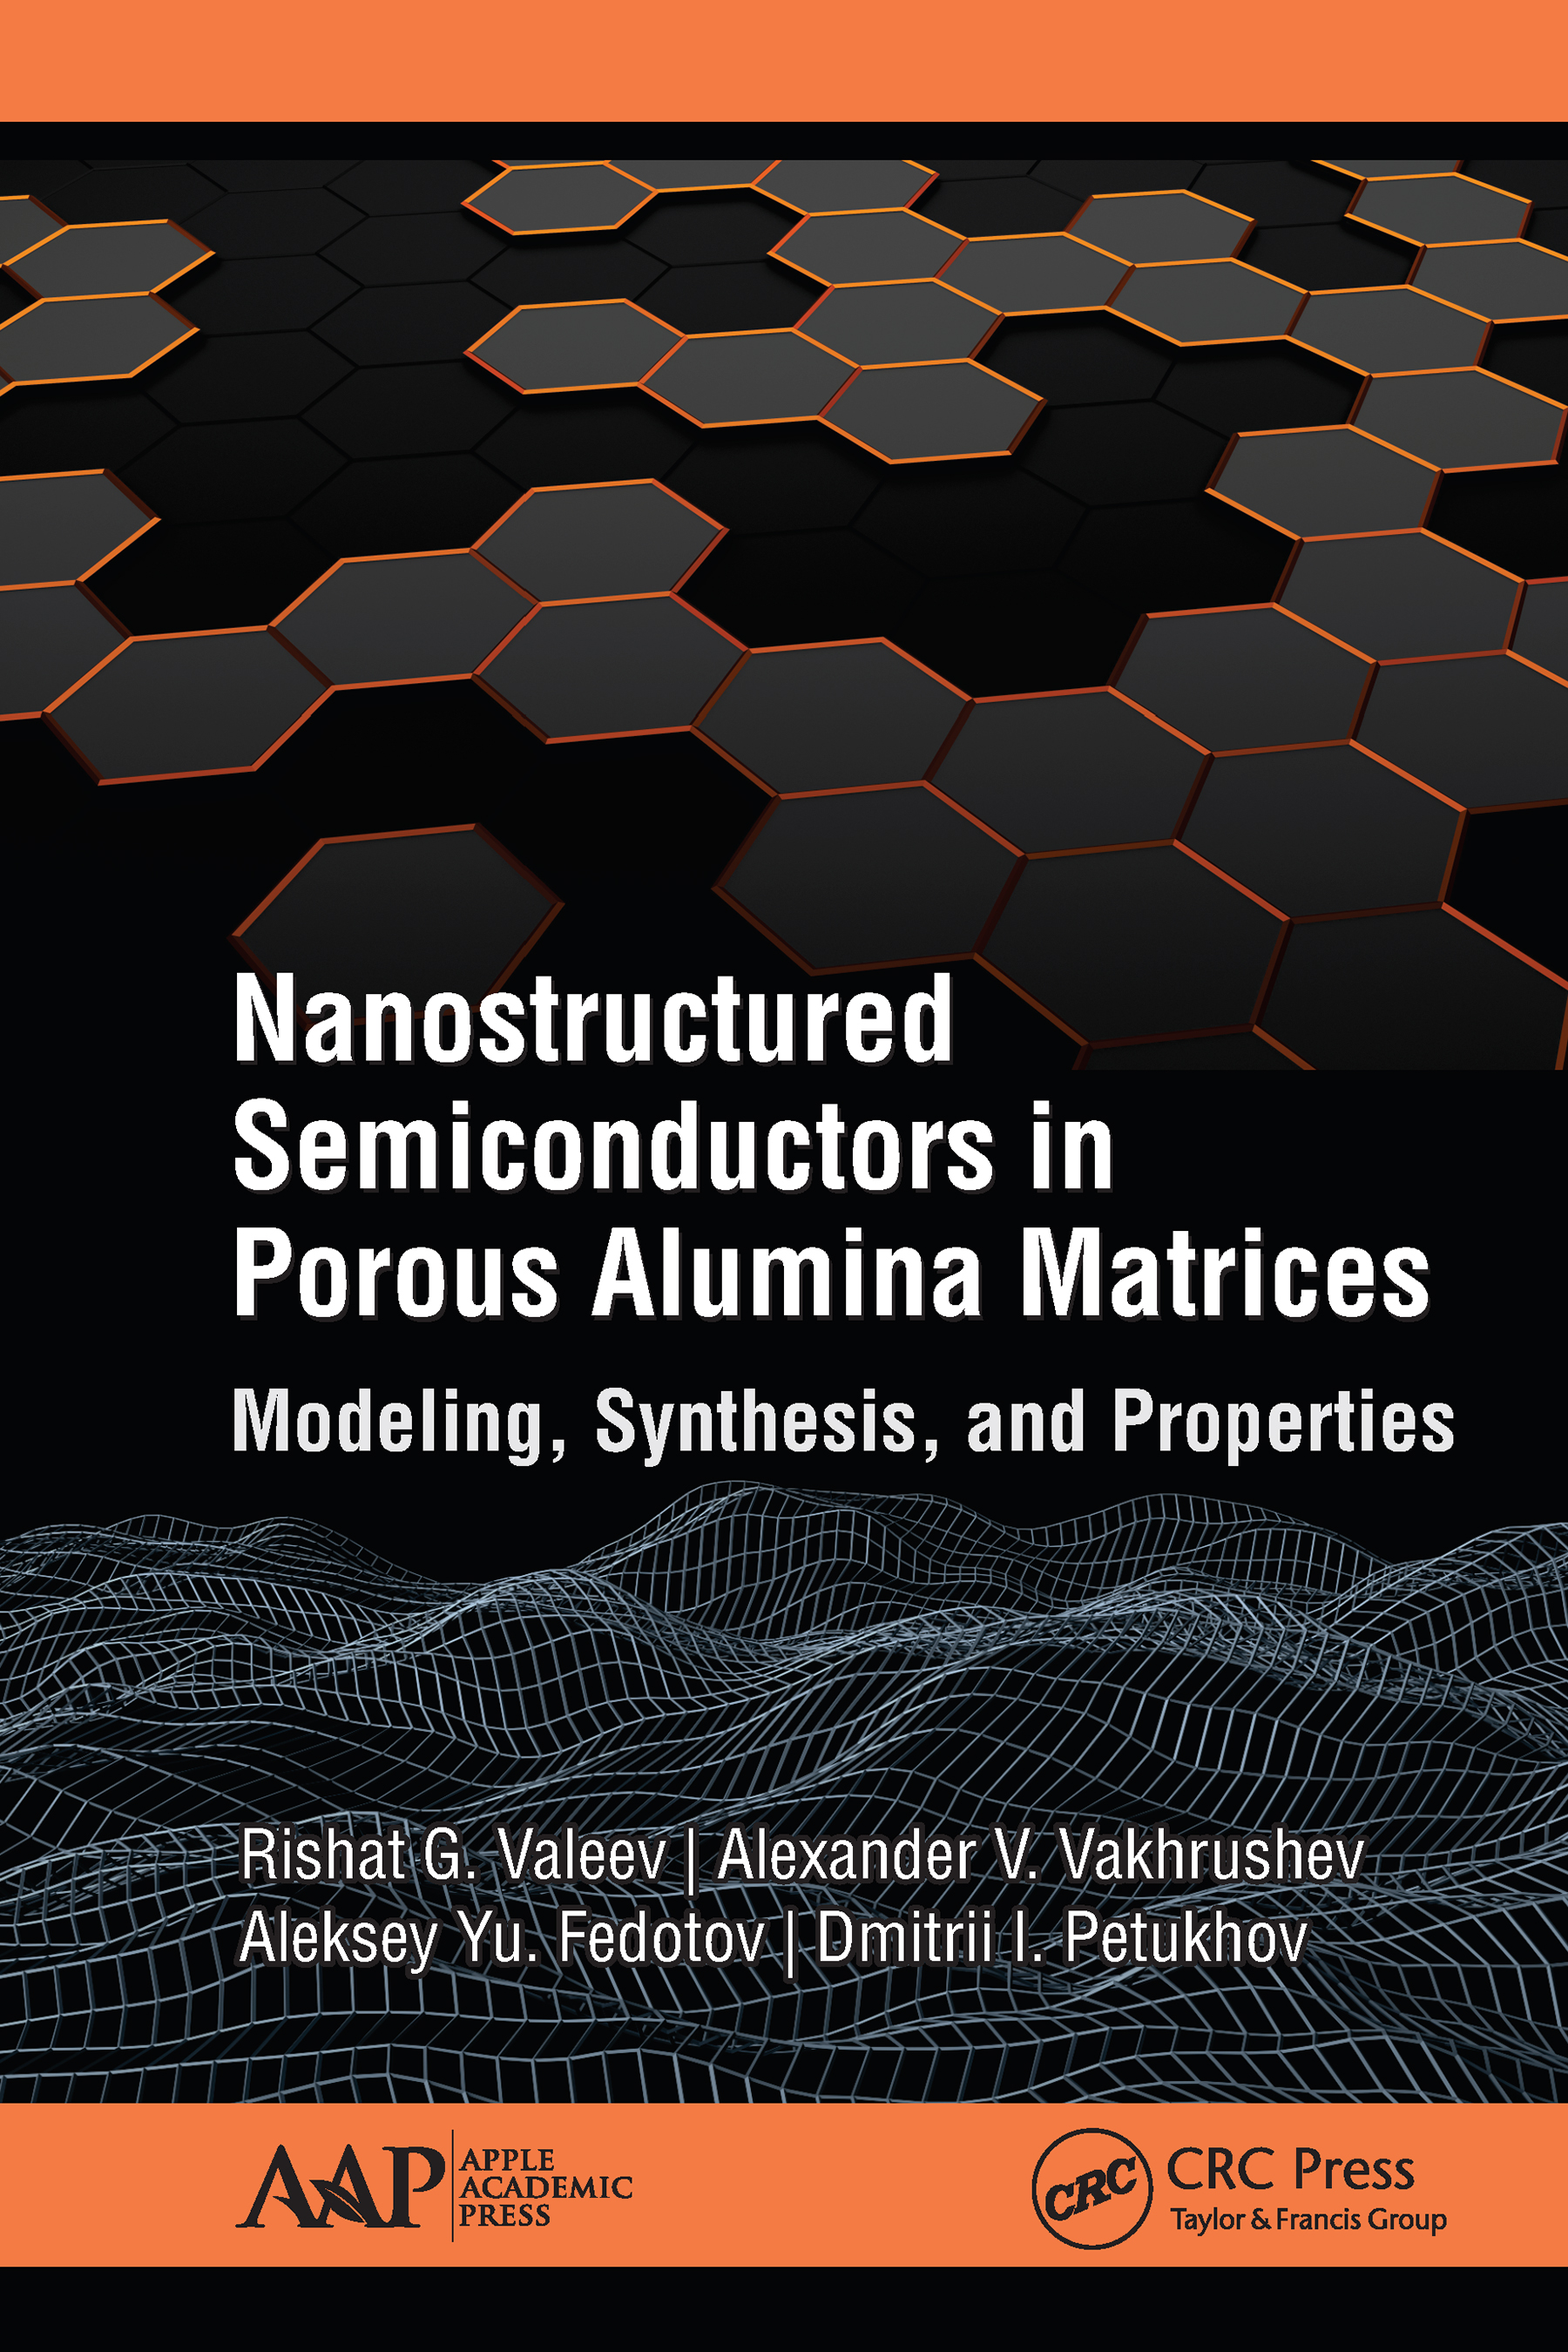 Nanostructured Semiconductors in Porous Alumina Matrices: Modeling, Synthesis, and Properties book cover